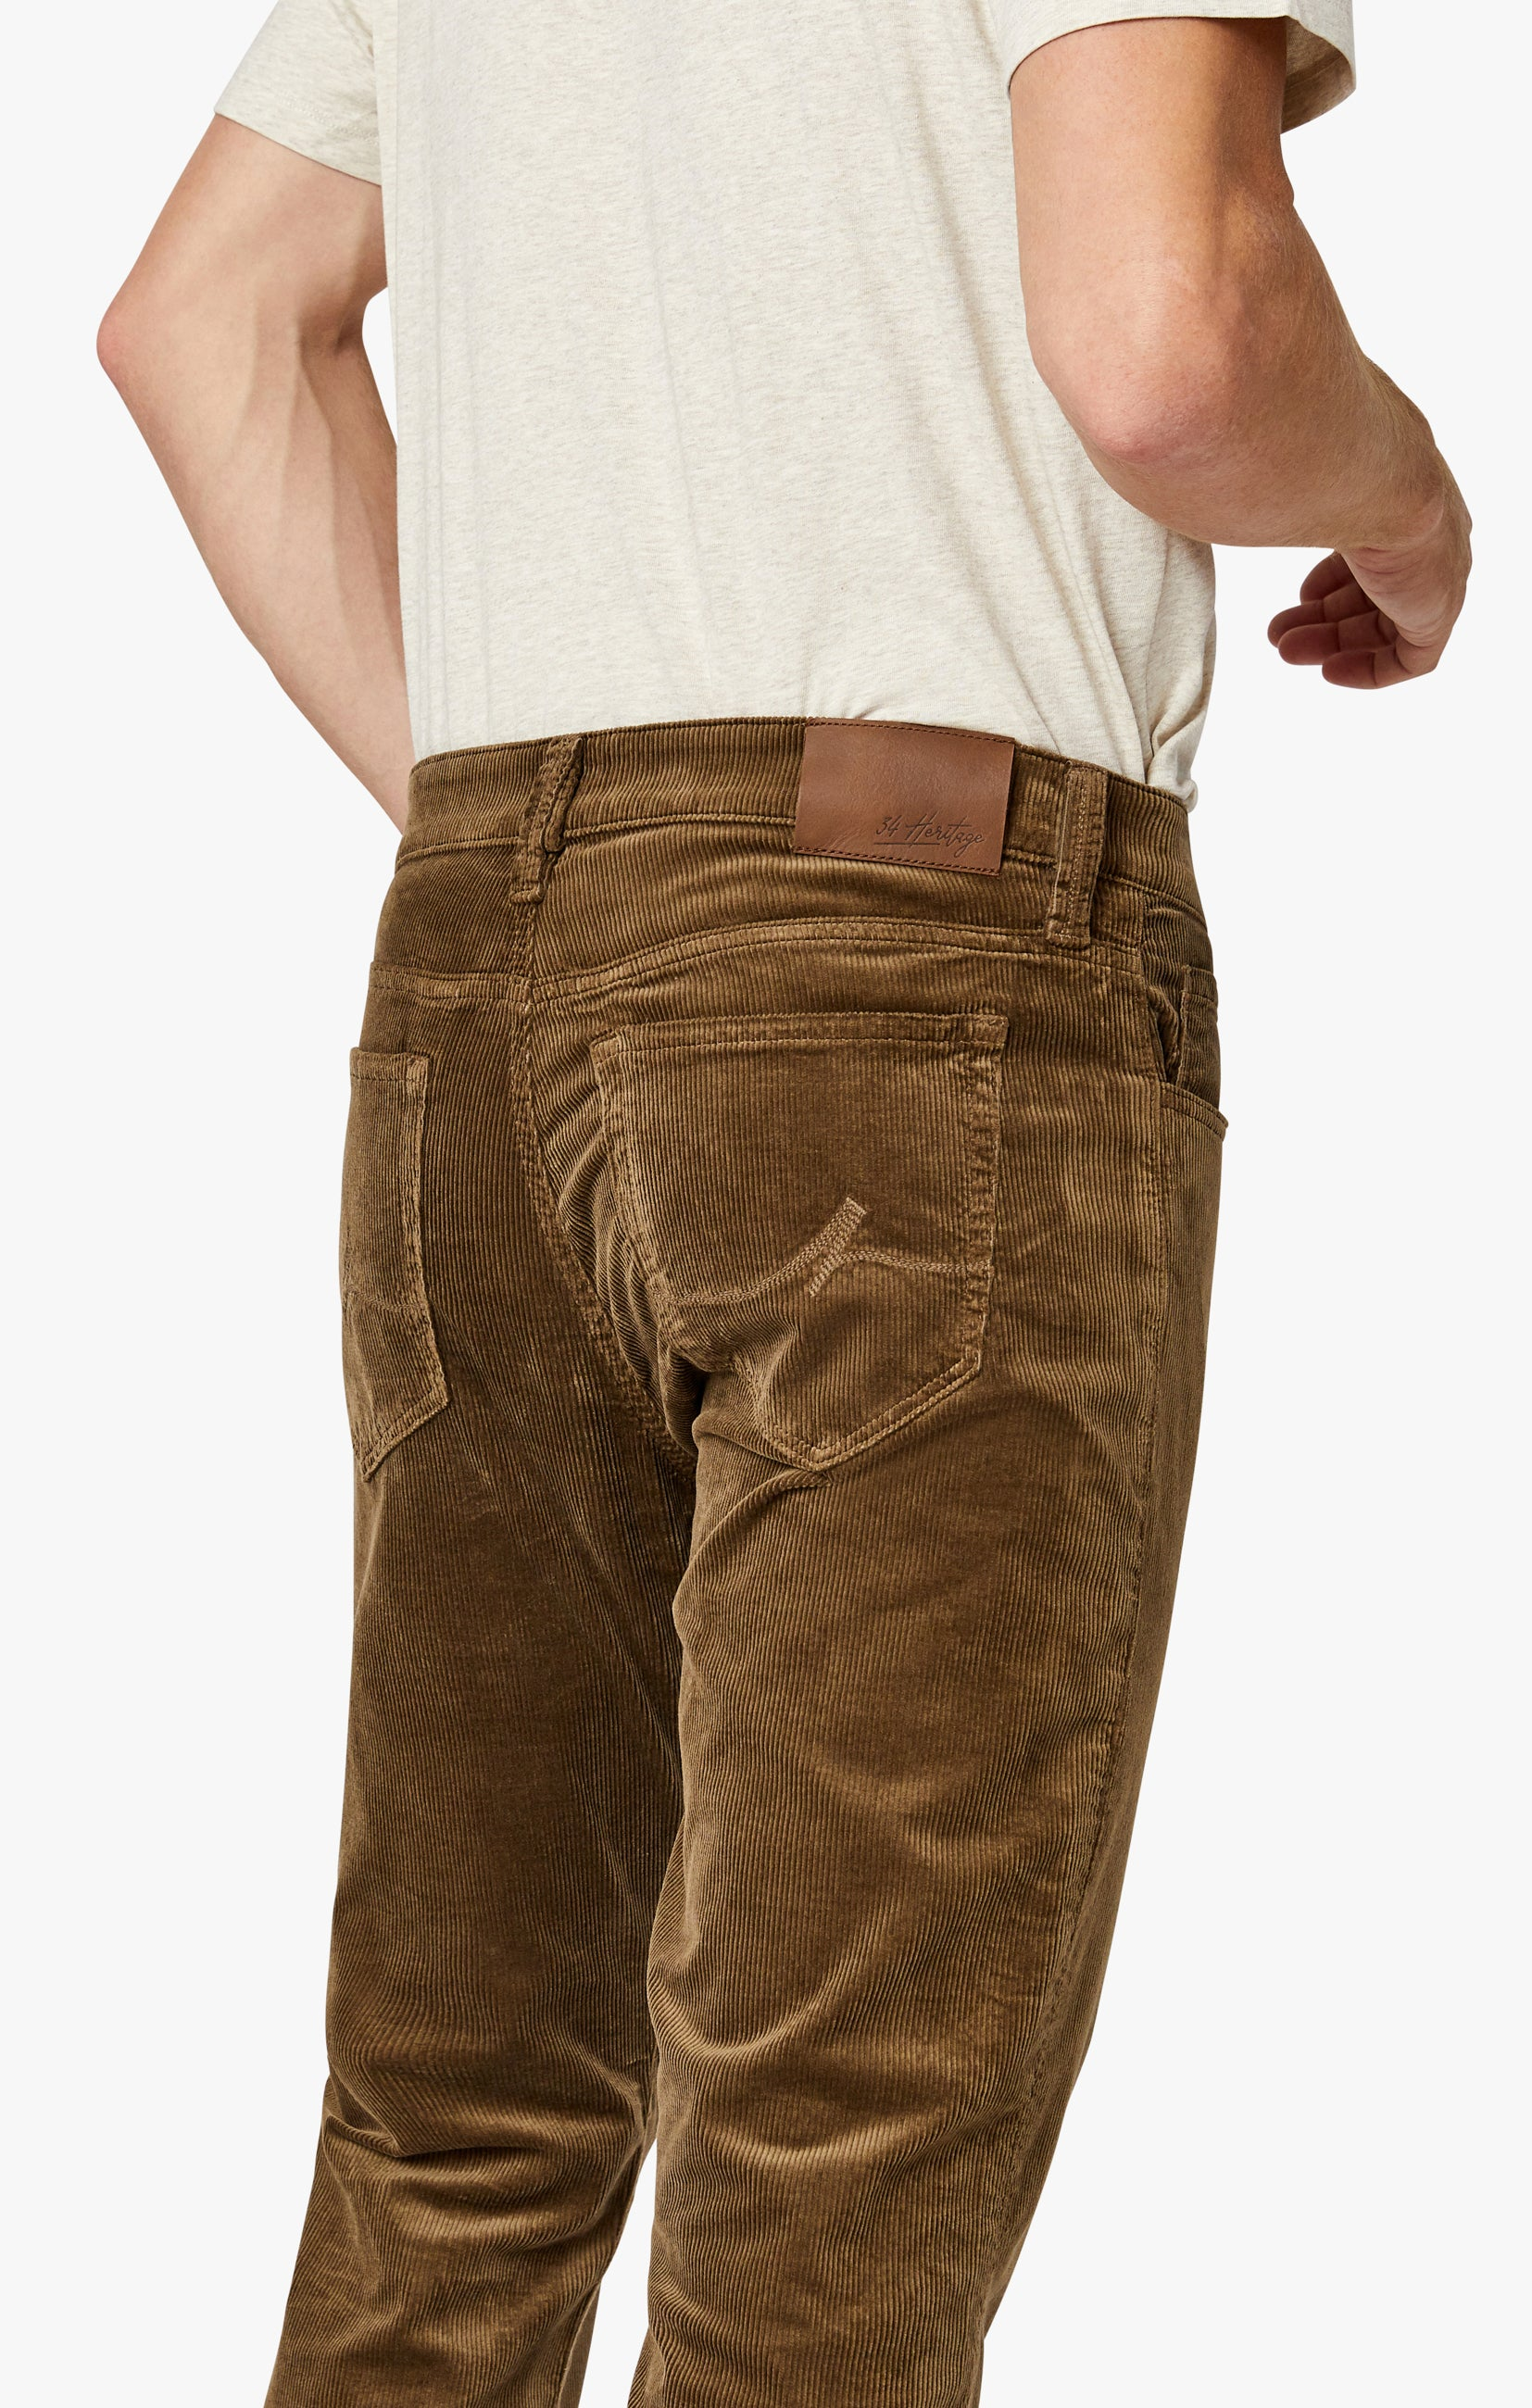 Charisma Relaxed Straight Pants in Tobacco Cord Image 7